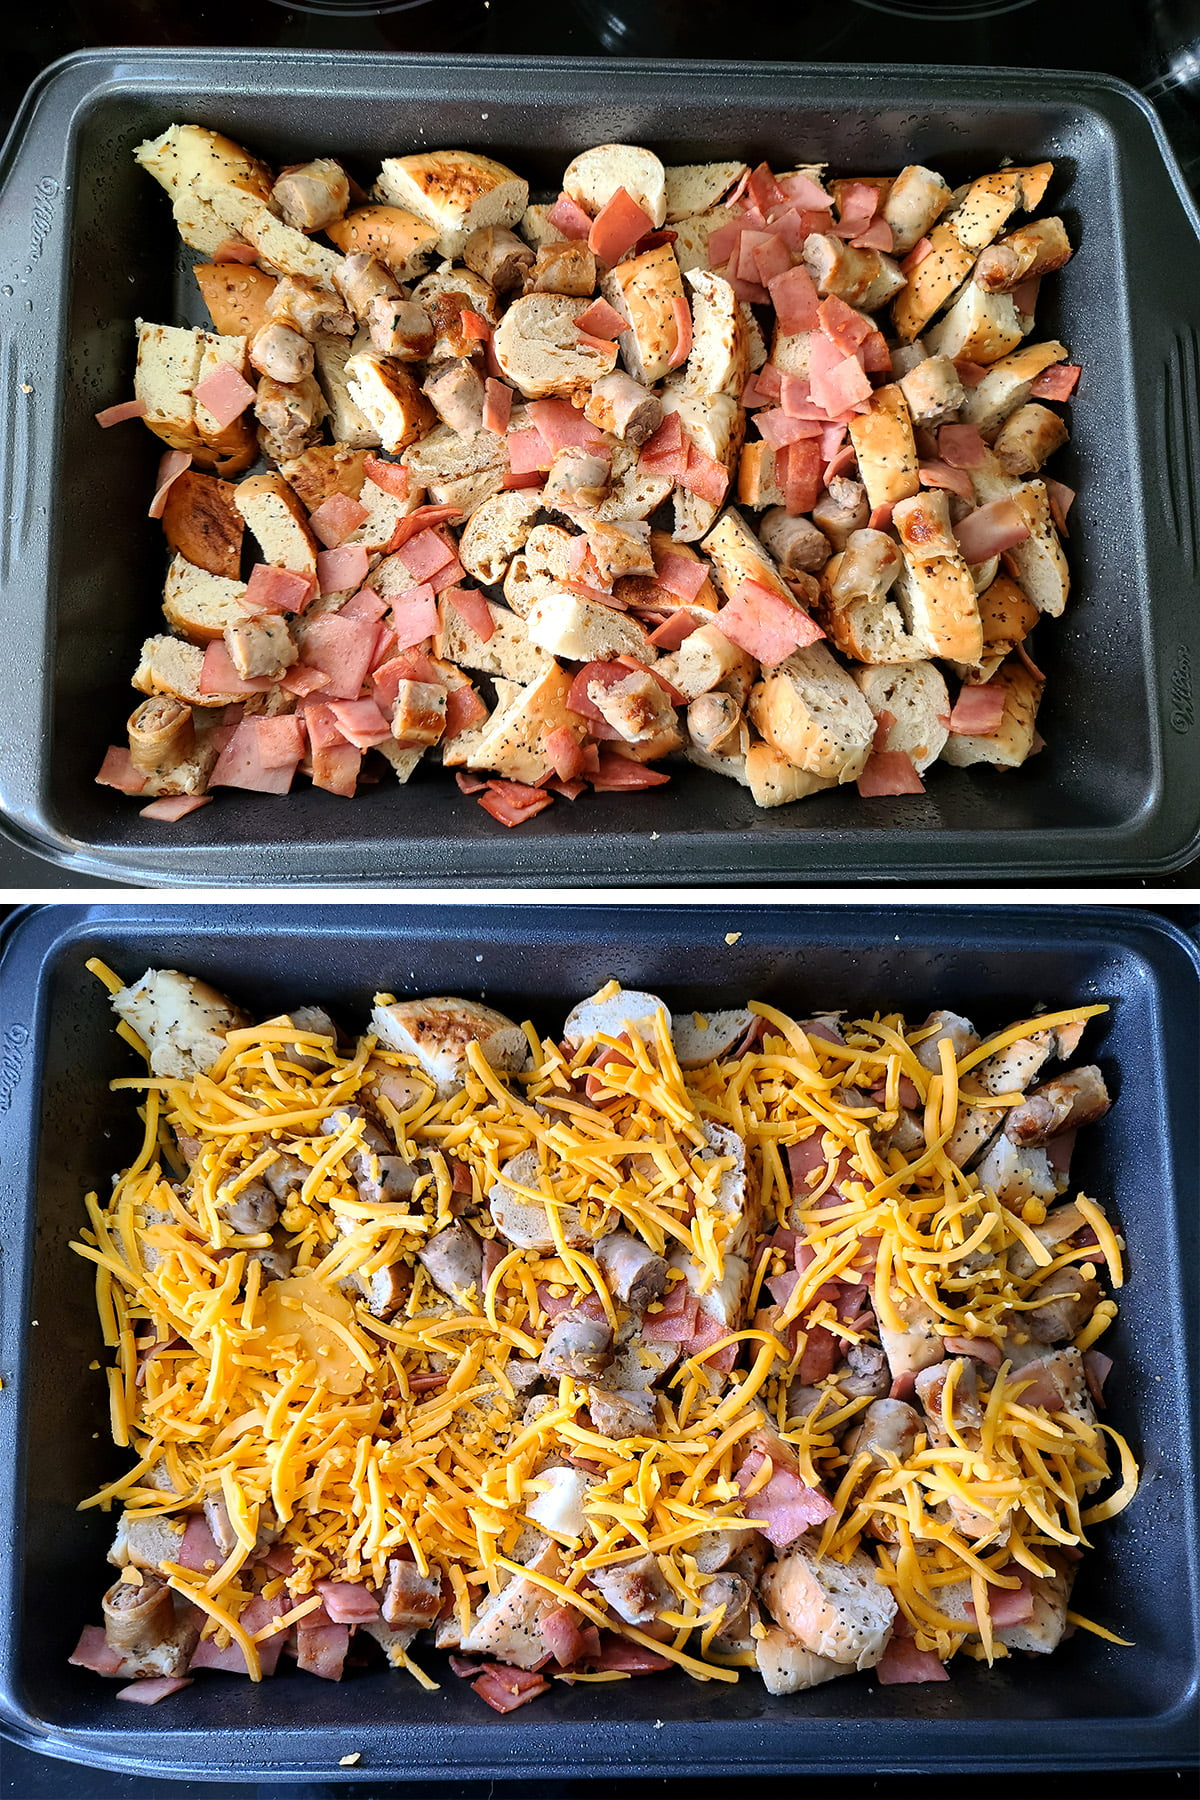 A two part compilation image showing a pan of bagel pieces and meats on top, and the same pan with a layer of shredded cheddar cheese on the bottom image.